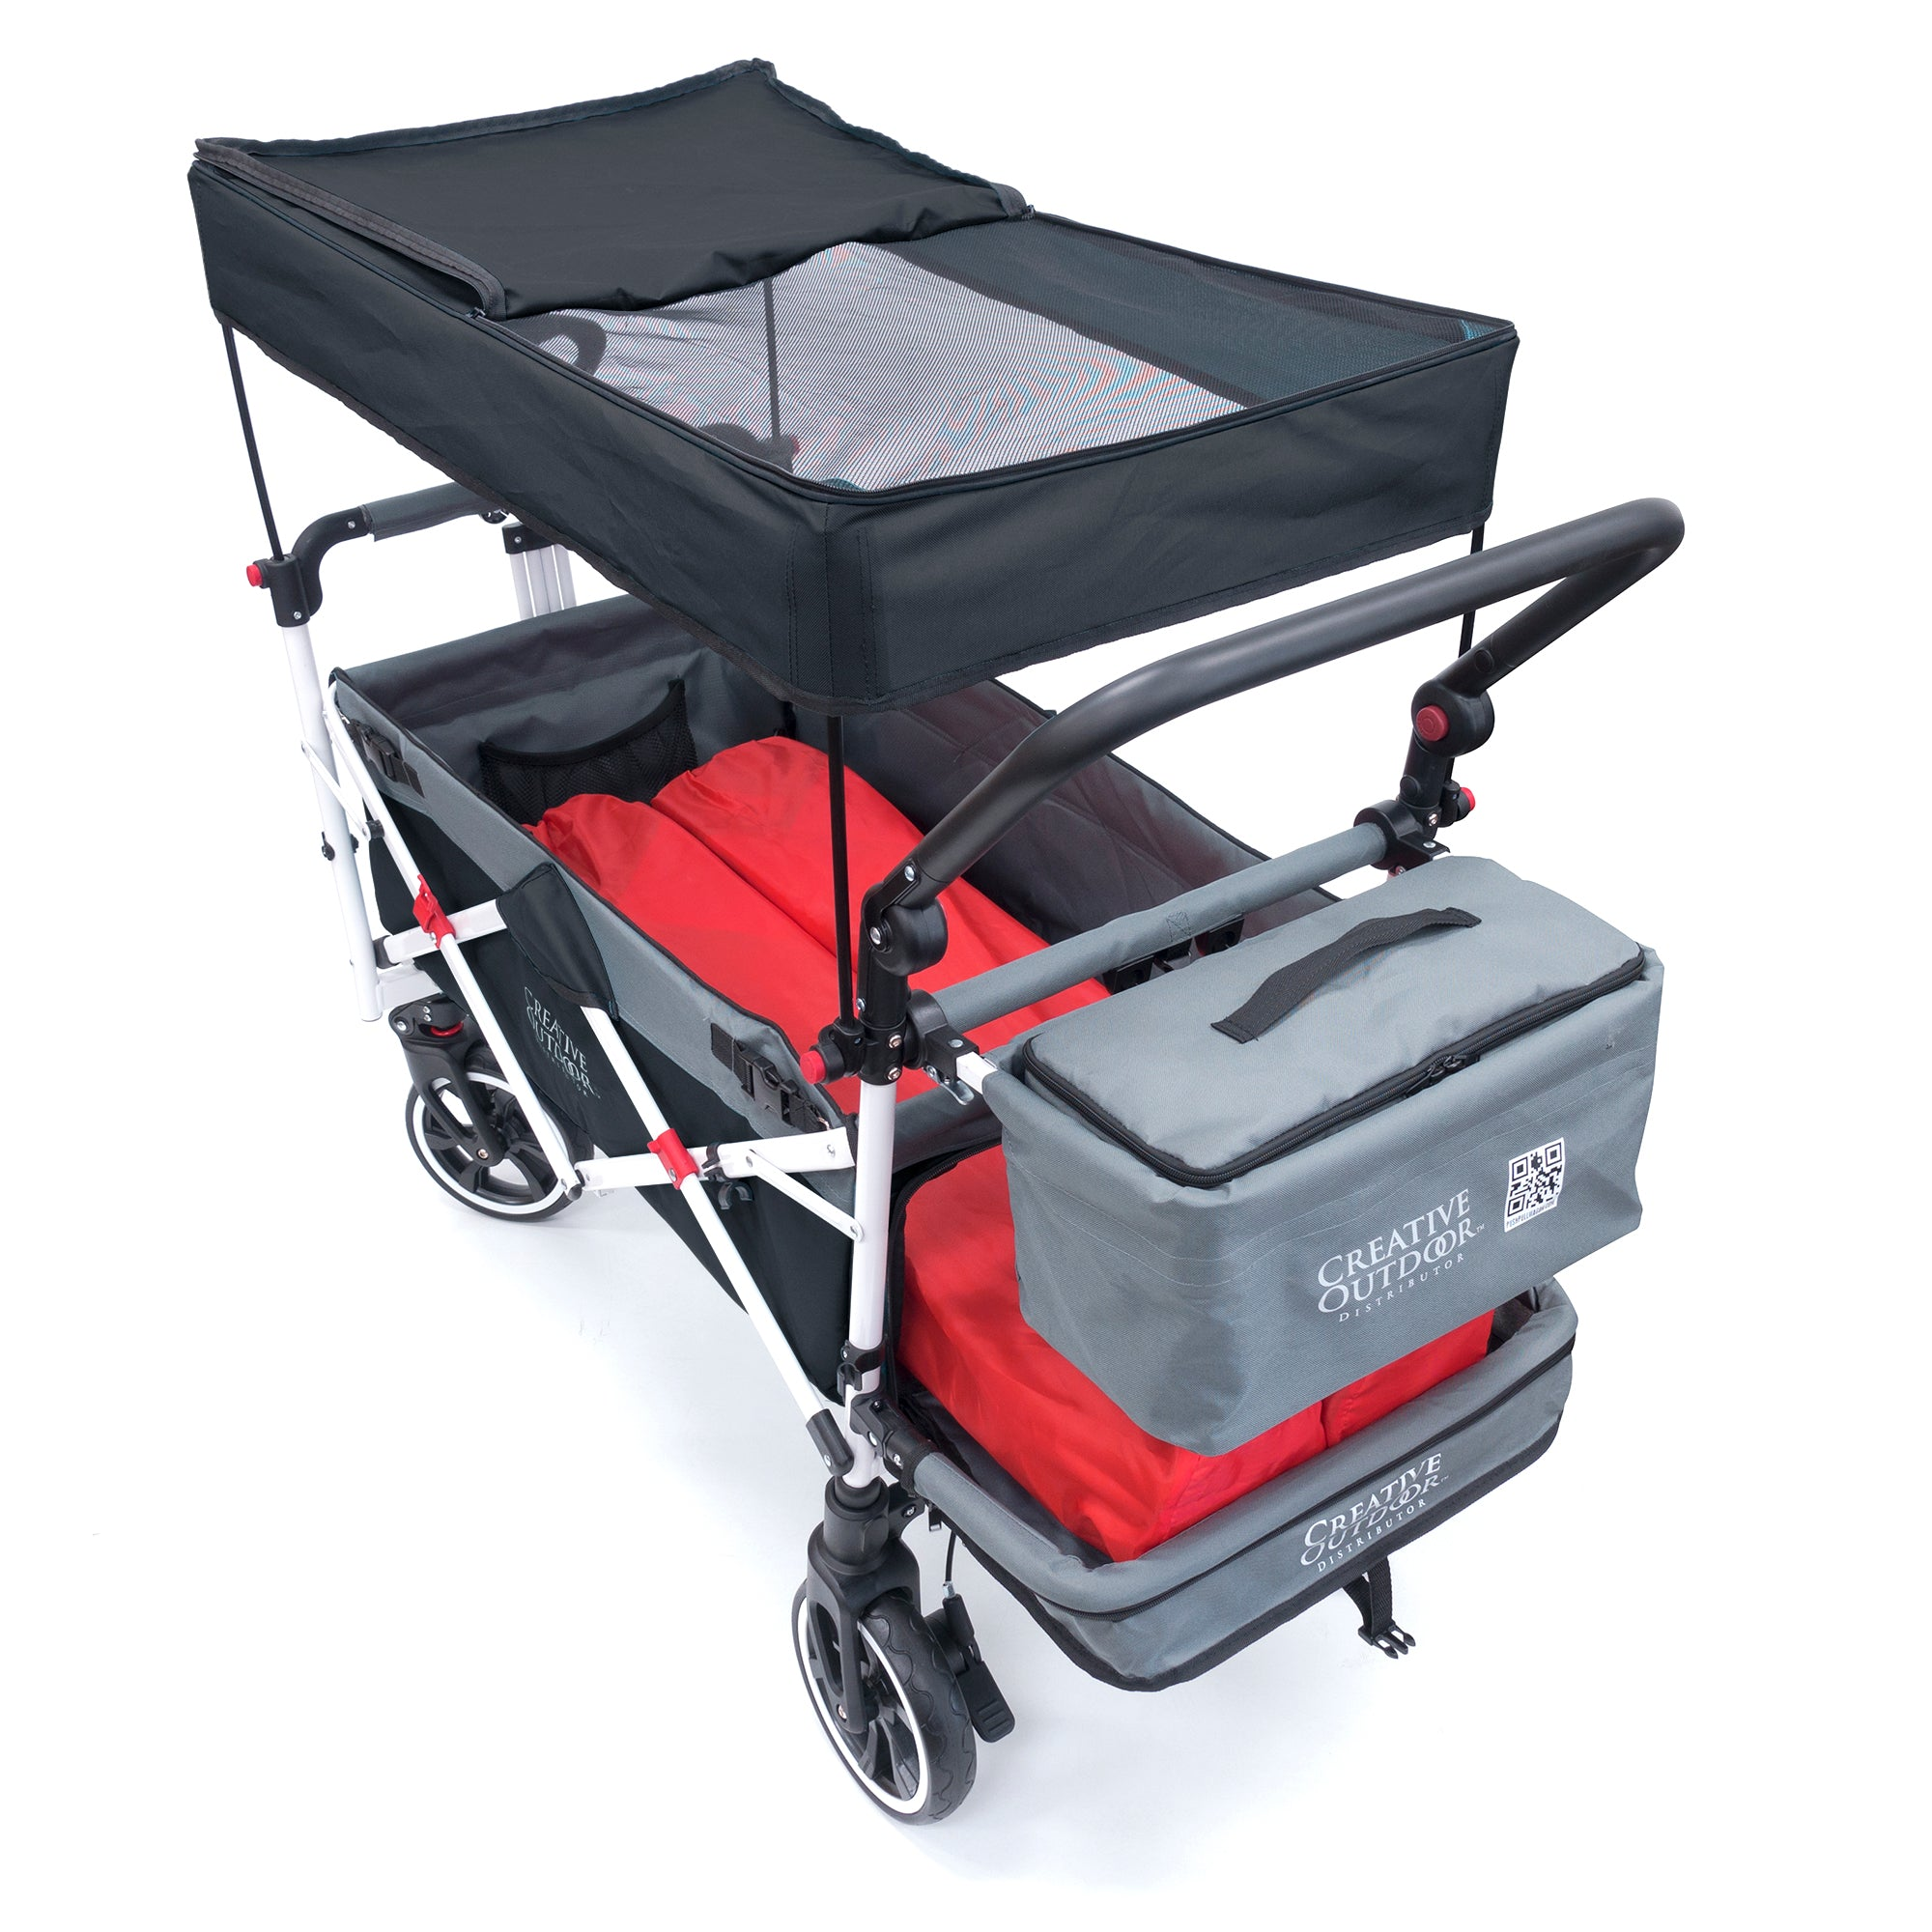 Push Pull TITANIUM SERIES Folding Wagon Stroller with Canopy | Black